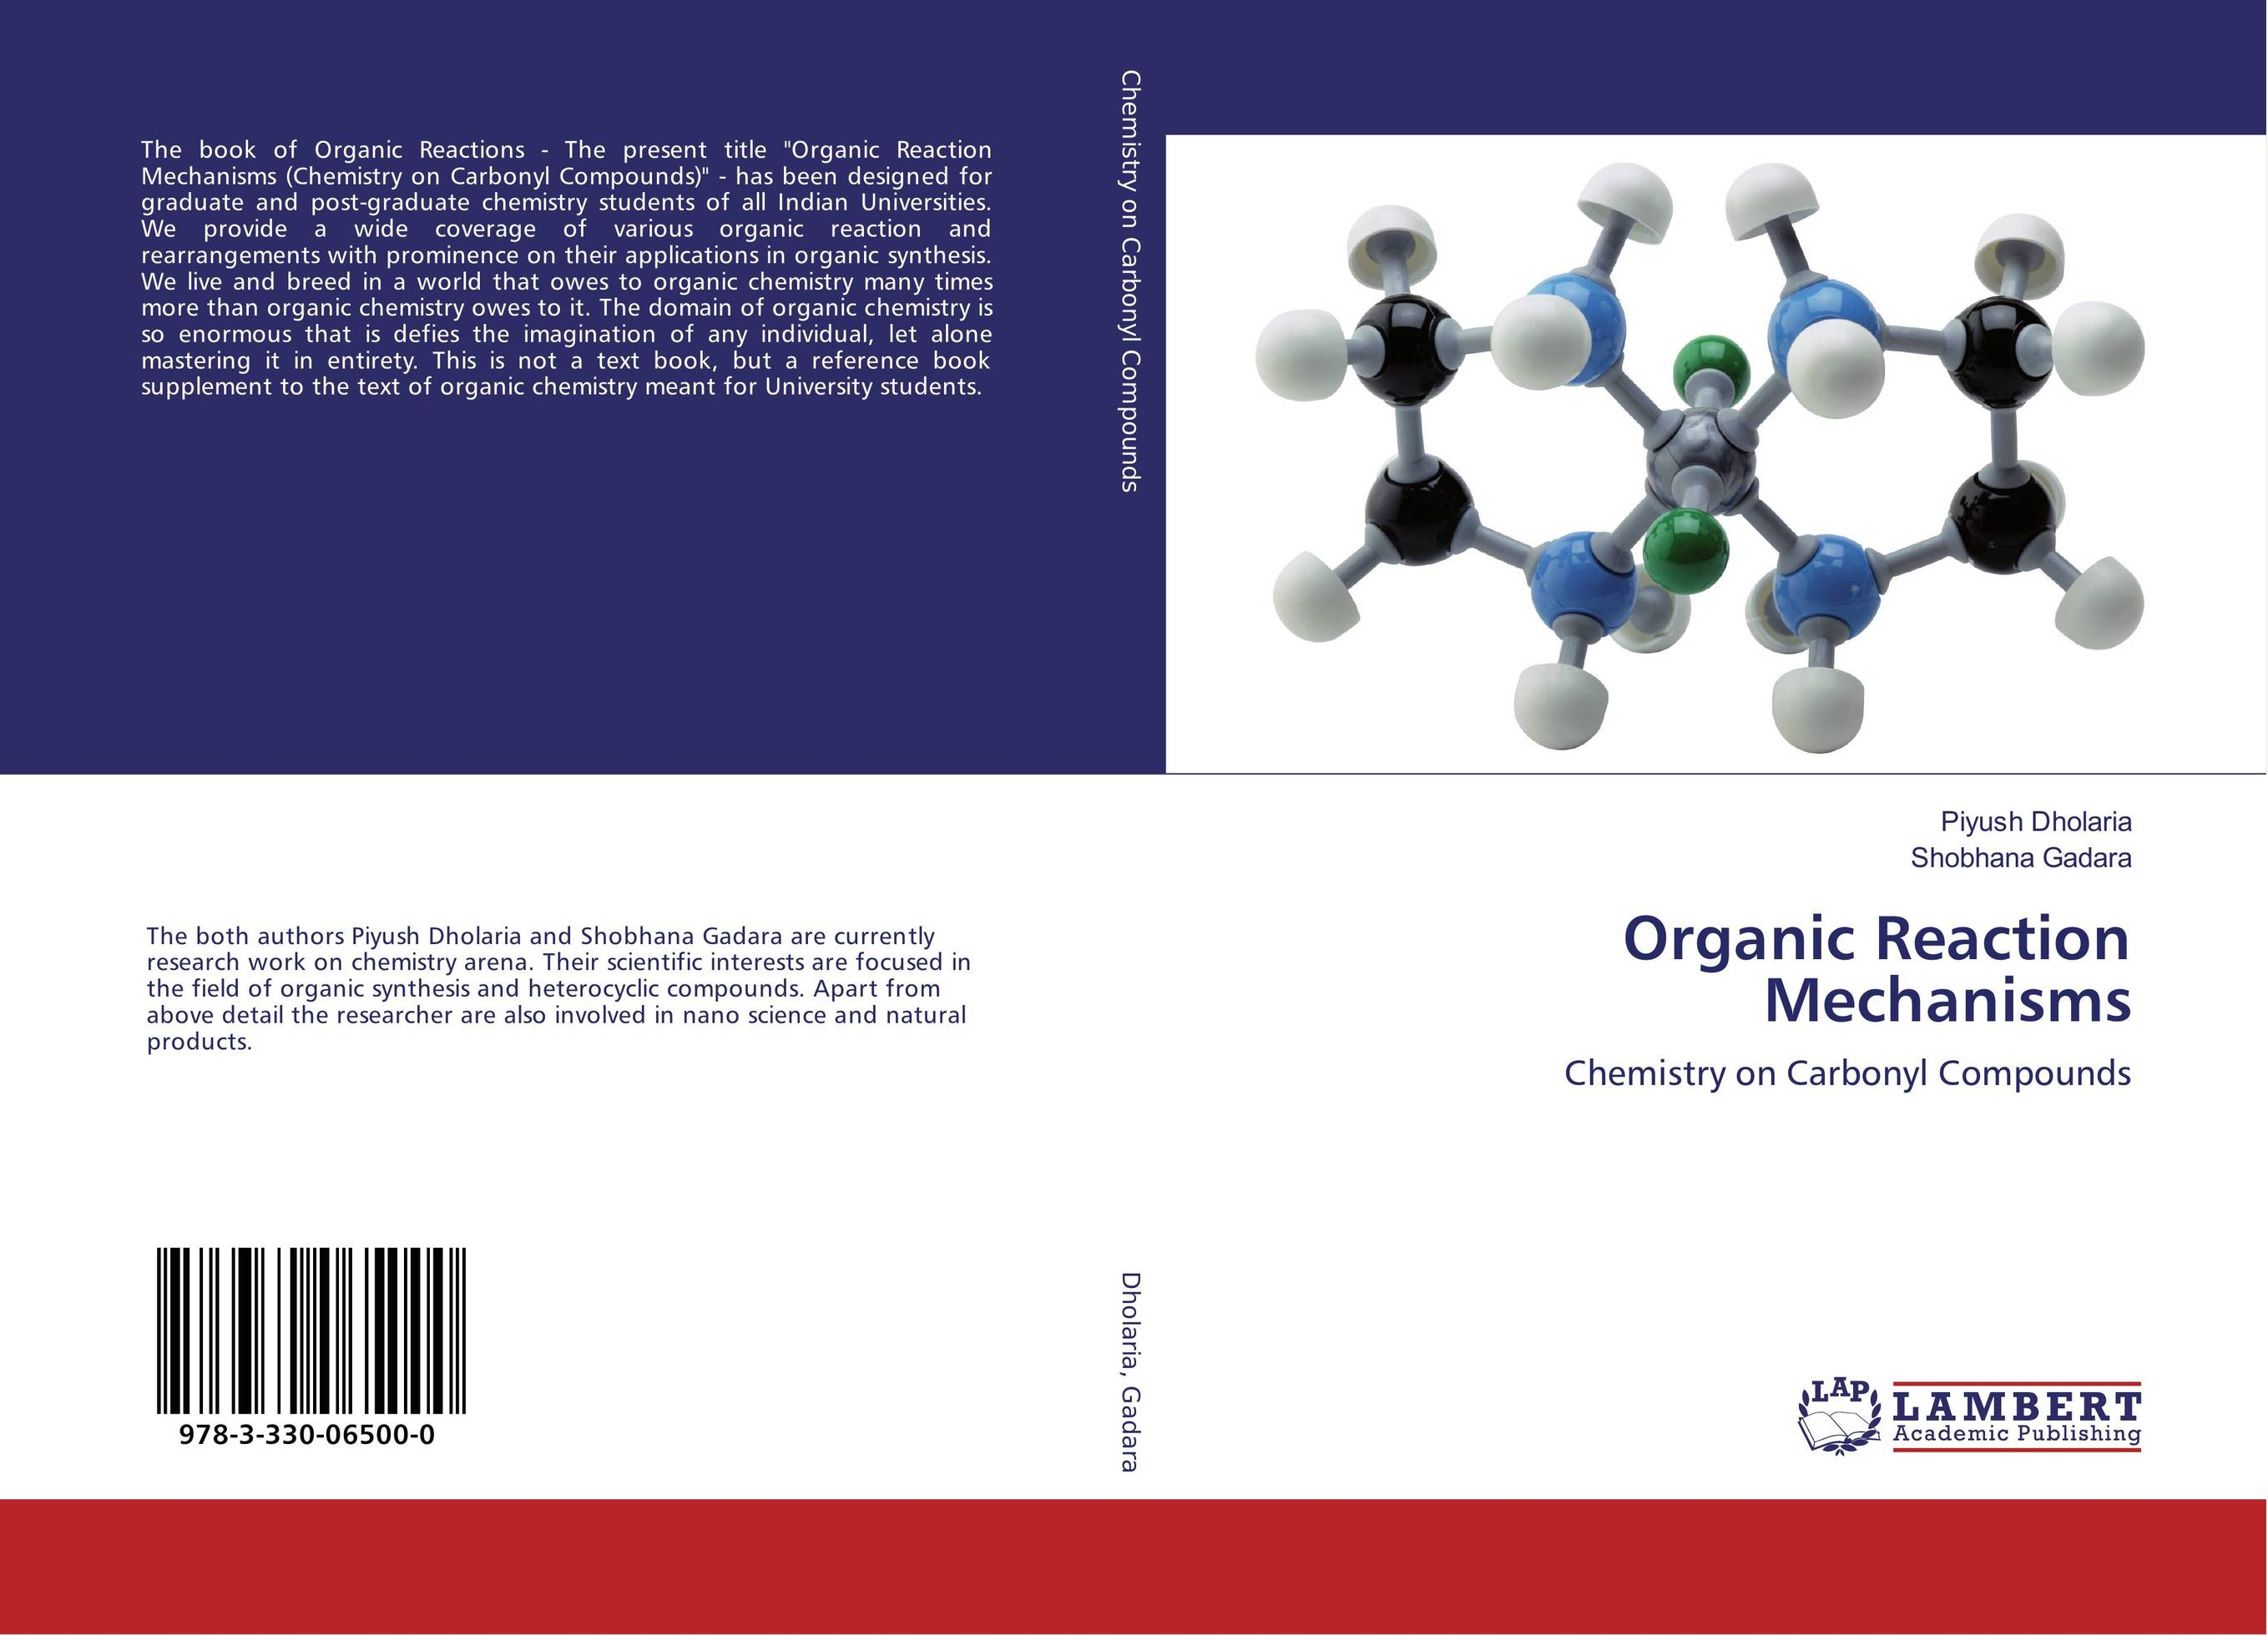 chemistry of arenes Organic chemistry portal reactions  organic synthesis search categories: c-c bond formation  arenes  alkylation, arylation related: name reactions  superelectrophilic reactivity of α,β-unsaturated amides towards weak nucleophiles such as arenes and cyclohexane is initiated either with triflic acid or with excess alcl 3.